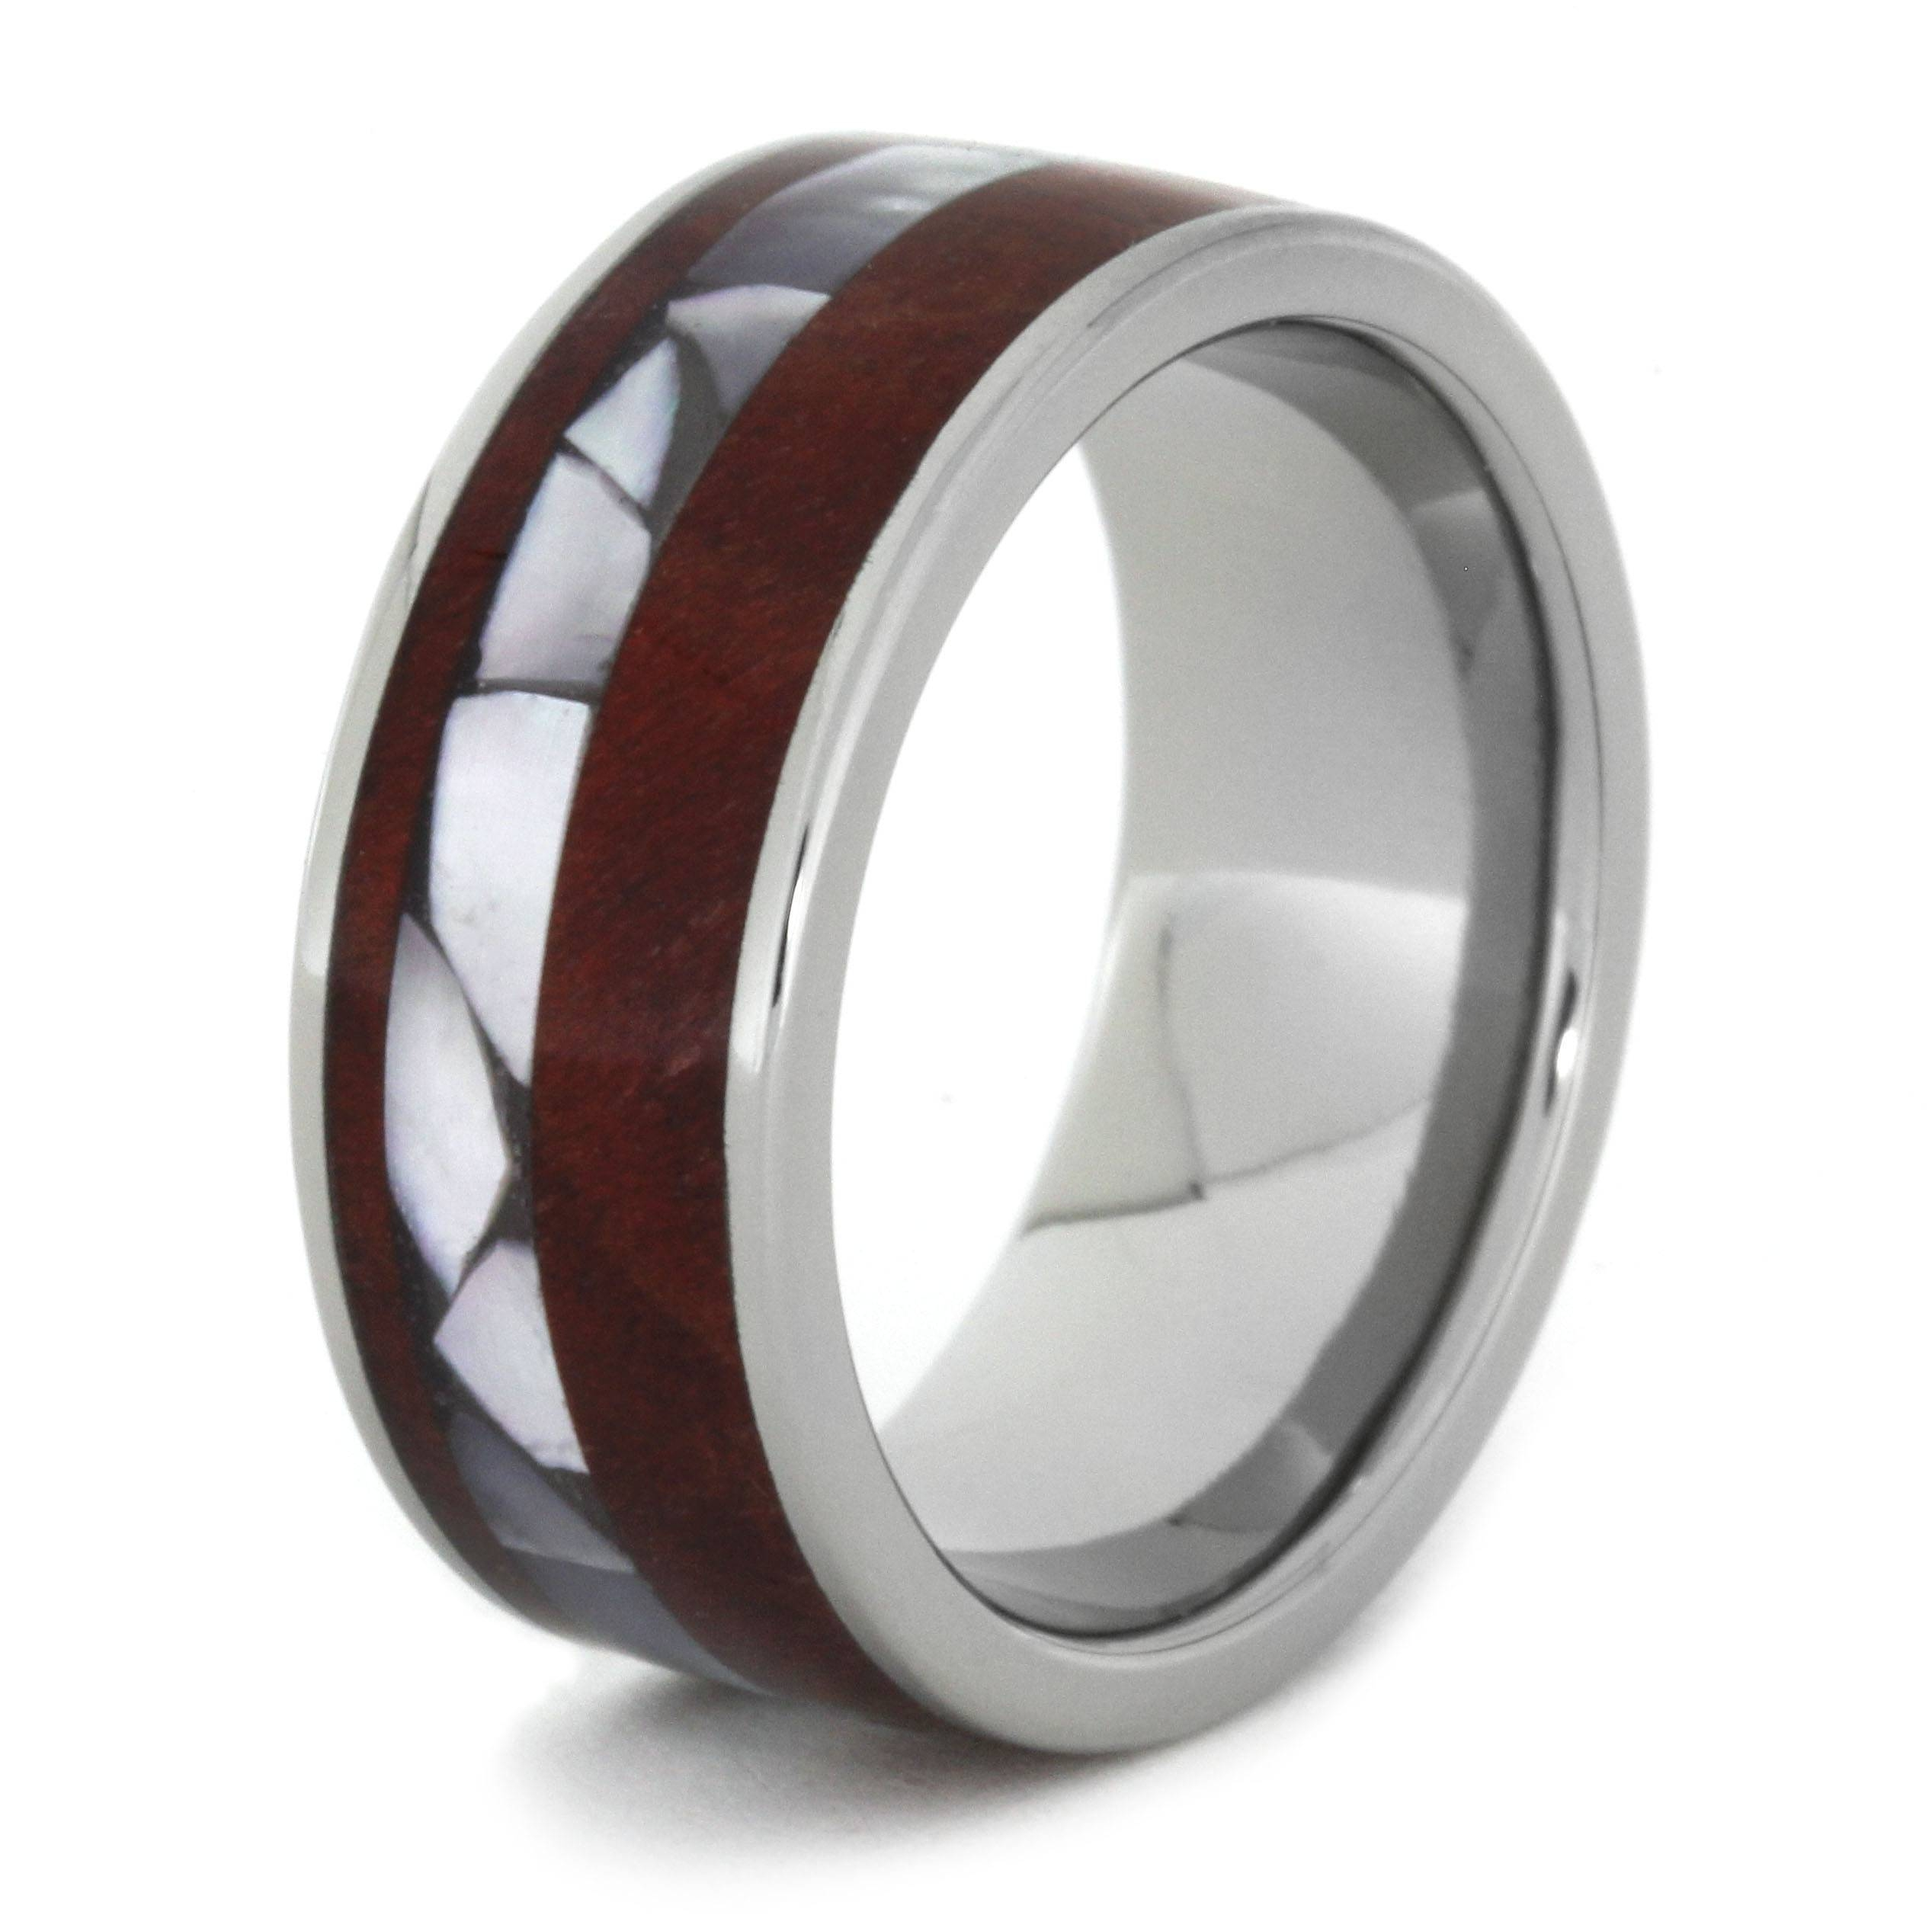 Mother Of Pearl Ring With Ruby Redwood In A Titanium Band Intended For Mother Of Pearl Wedding Bands (View 5 of 15)